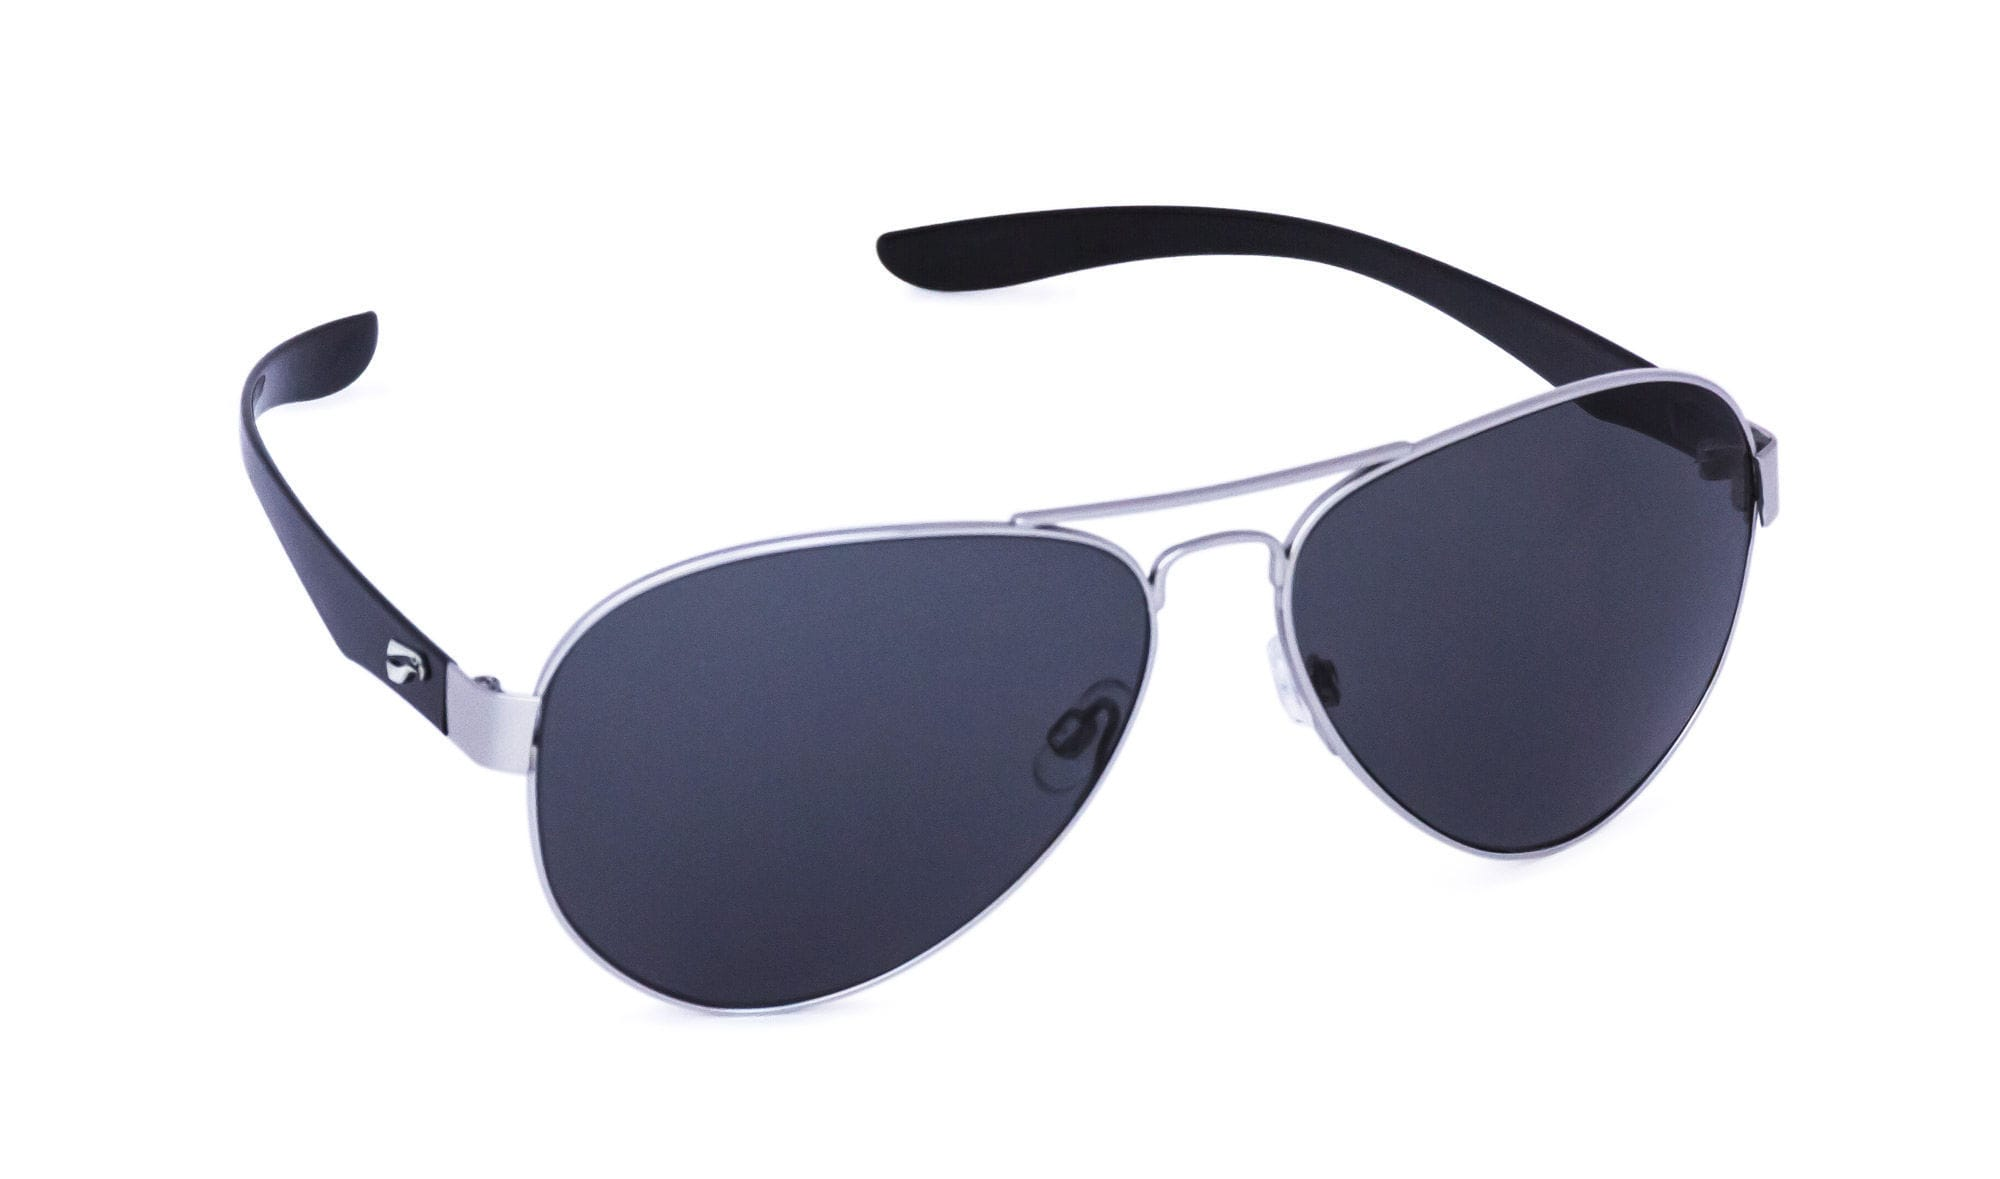 75cc39c95e Pilot glasses   sun   with polarized lenses   with UV protection ...